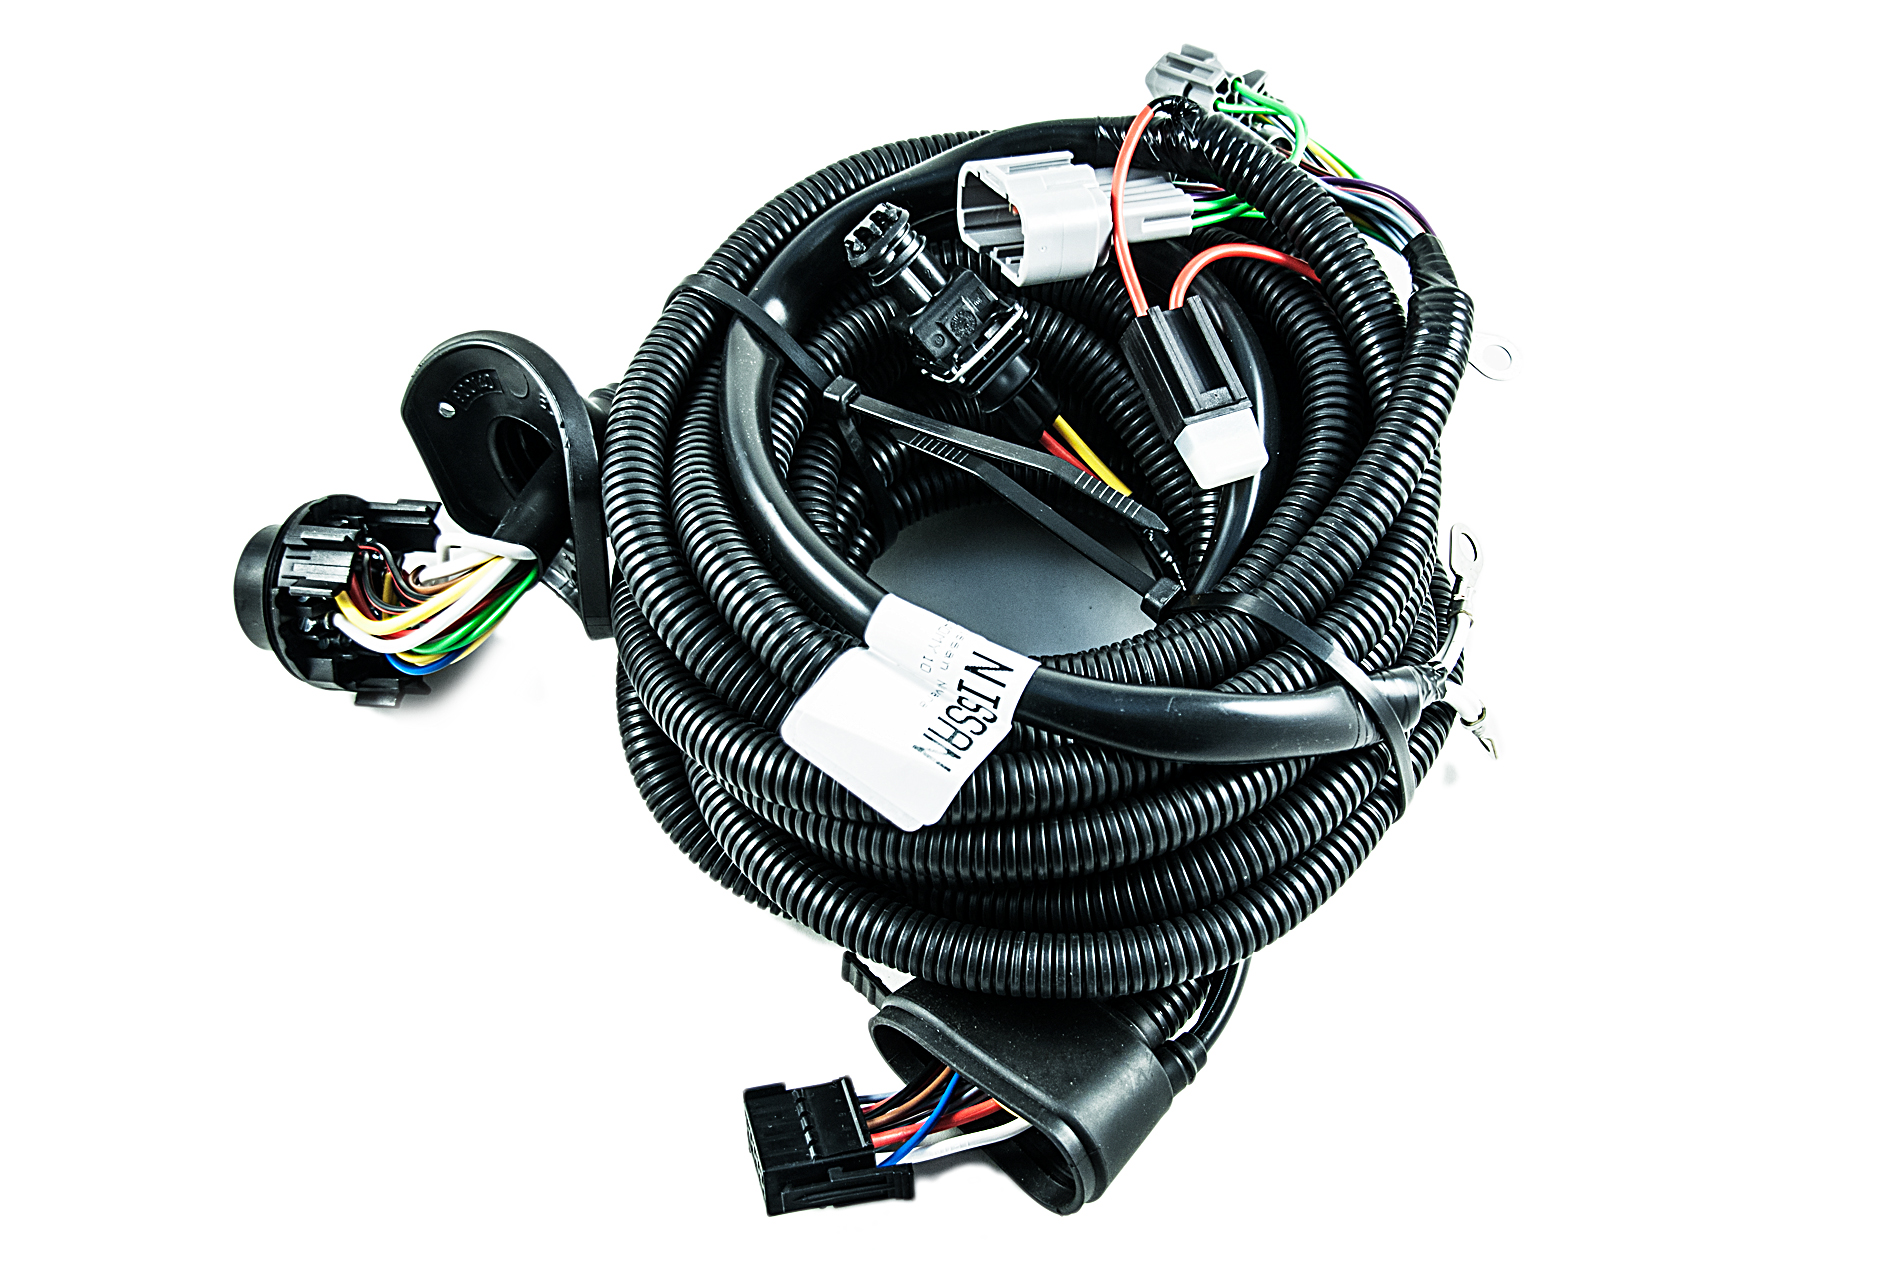 Product info likewise Telephone moreover Watch also Exchange To Premises Wiring additionally Kb vigor linefaults. on telephone wiring diagram uk